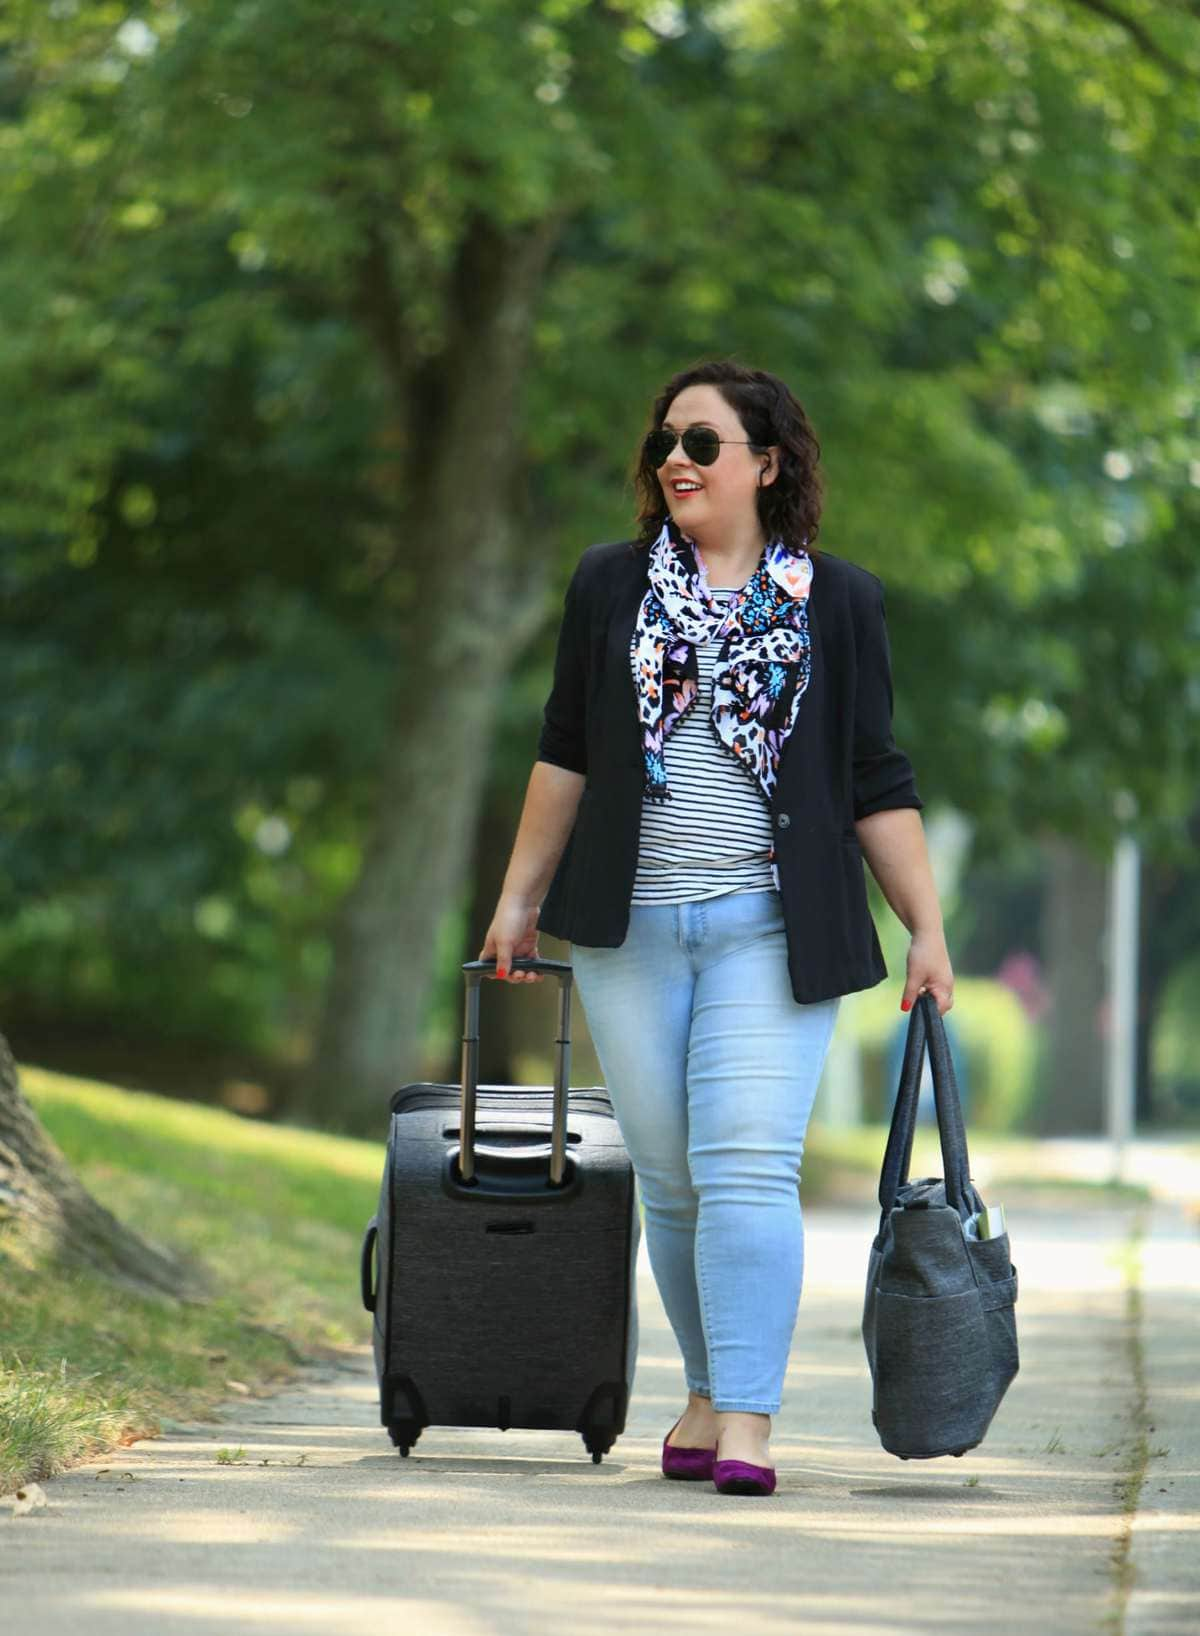 Wardrobe Oxygen dressed for travel in a cabi scarf, JAG Jeans and Ricardo Beverly Hills luggage